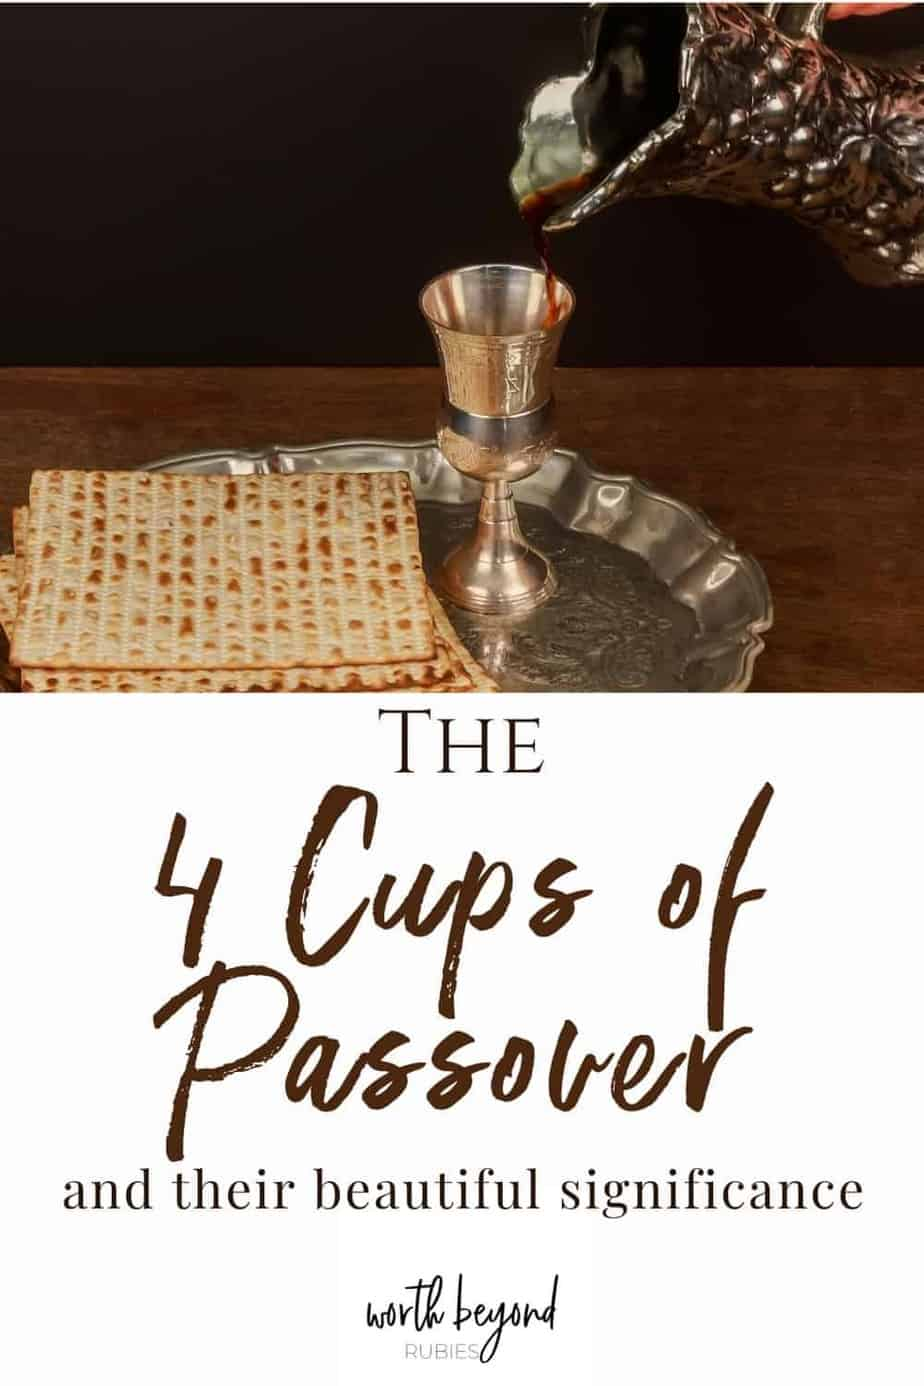 An image of a Passover plate with matzo and a kiddush cup - Text that reads The Four Cups of Passover and Their Beautiful Significance